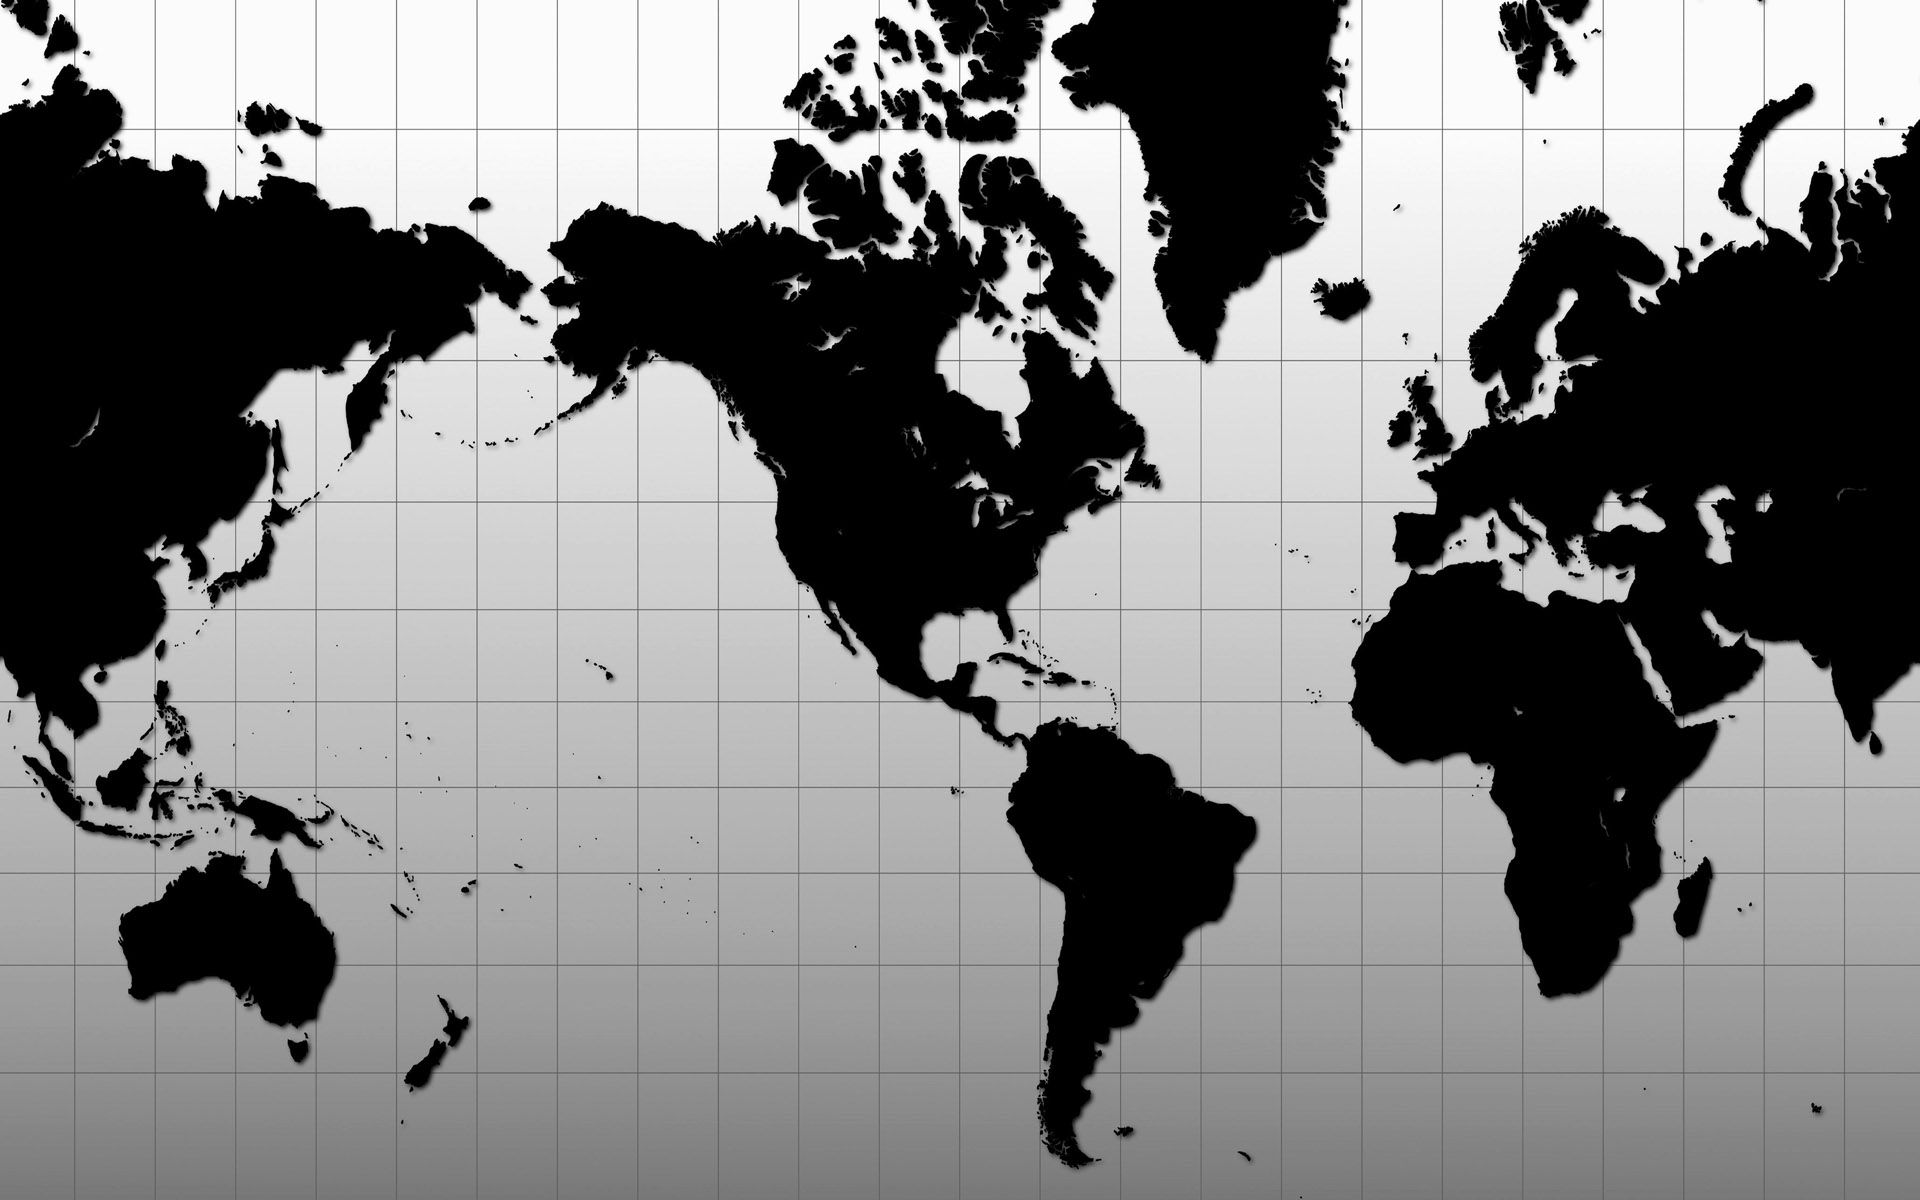 World map black and white hd wallpapers download free world map world map black and white hd wallpapers download free world map gumiabroncs Gallery